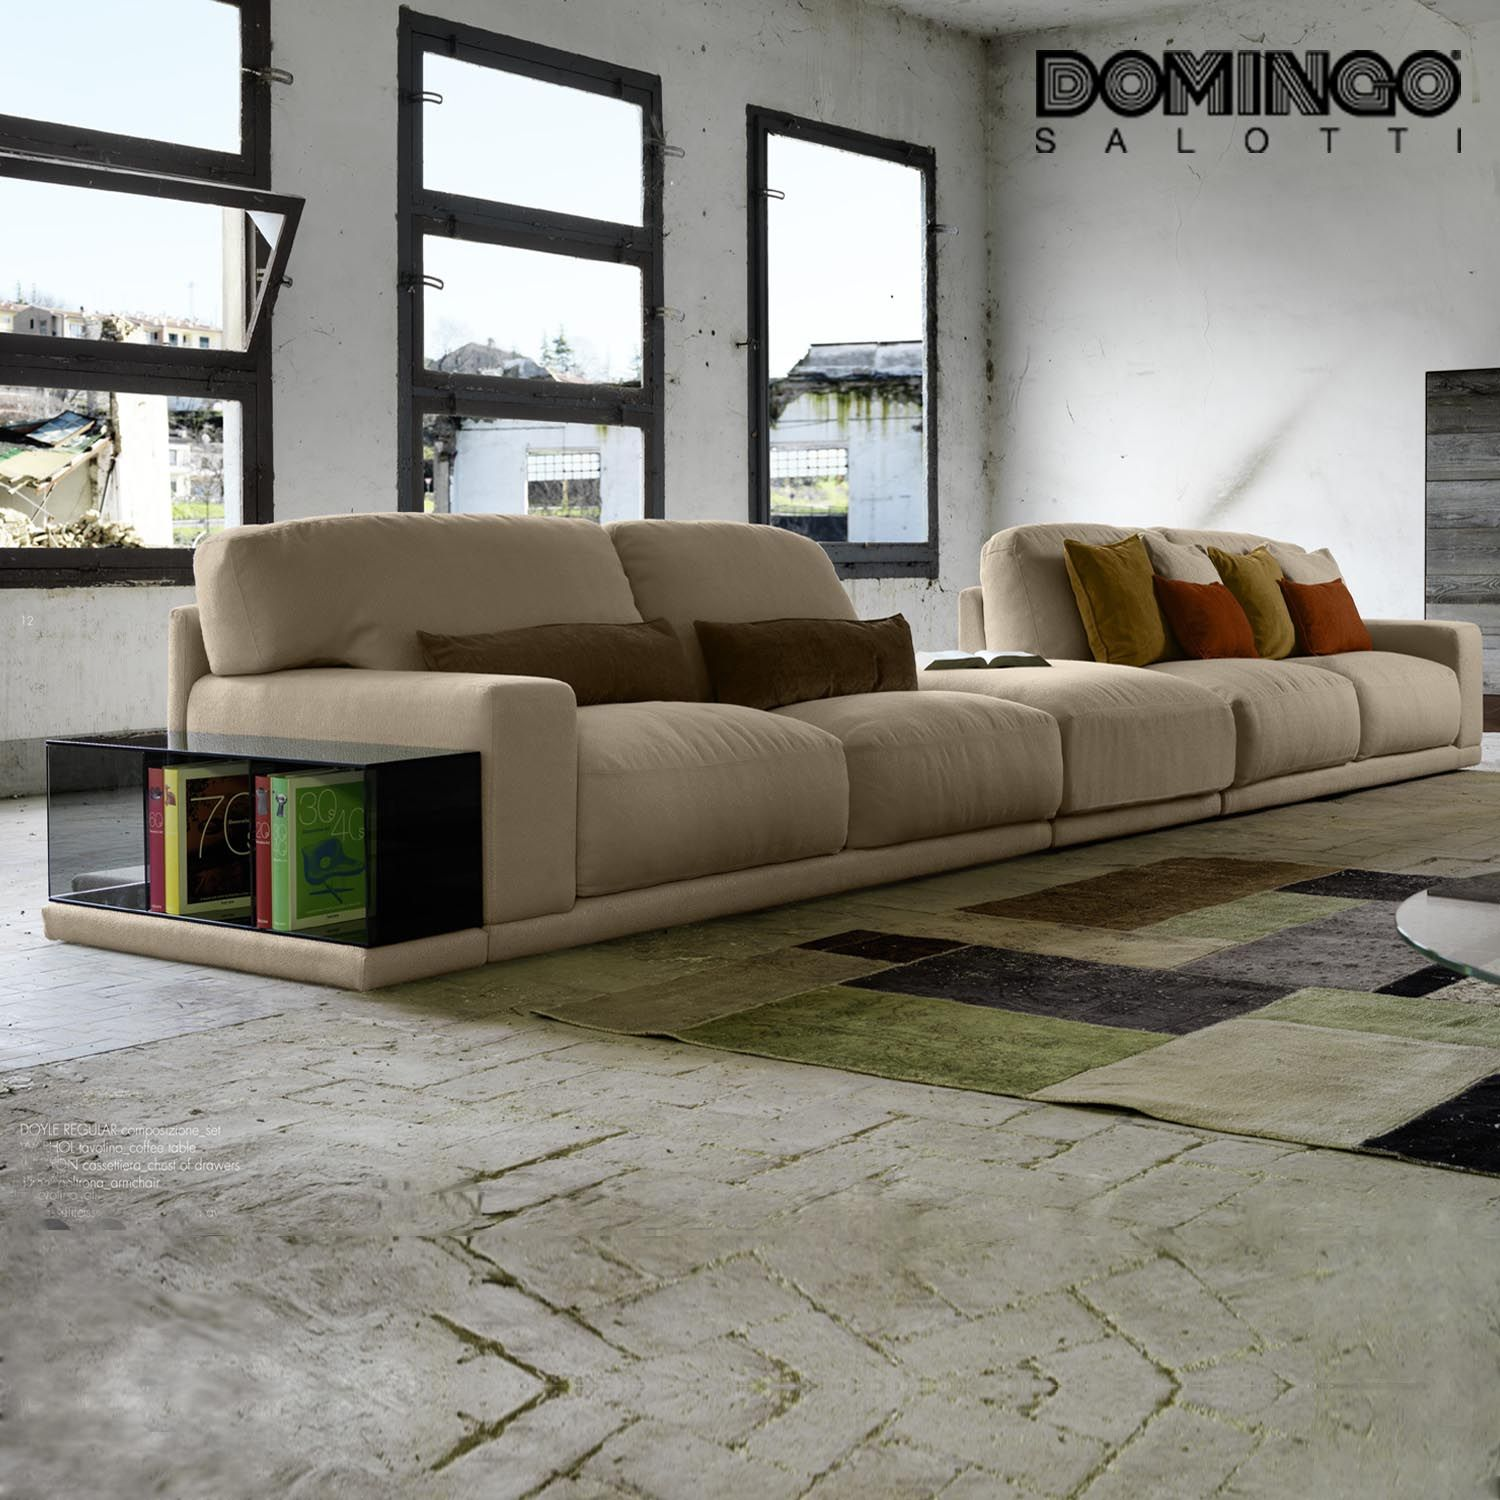 Modern Italian modular sofa available in various upholsteries and